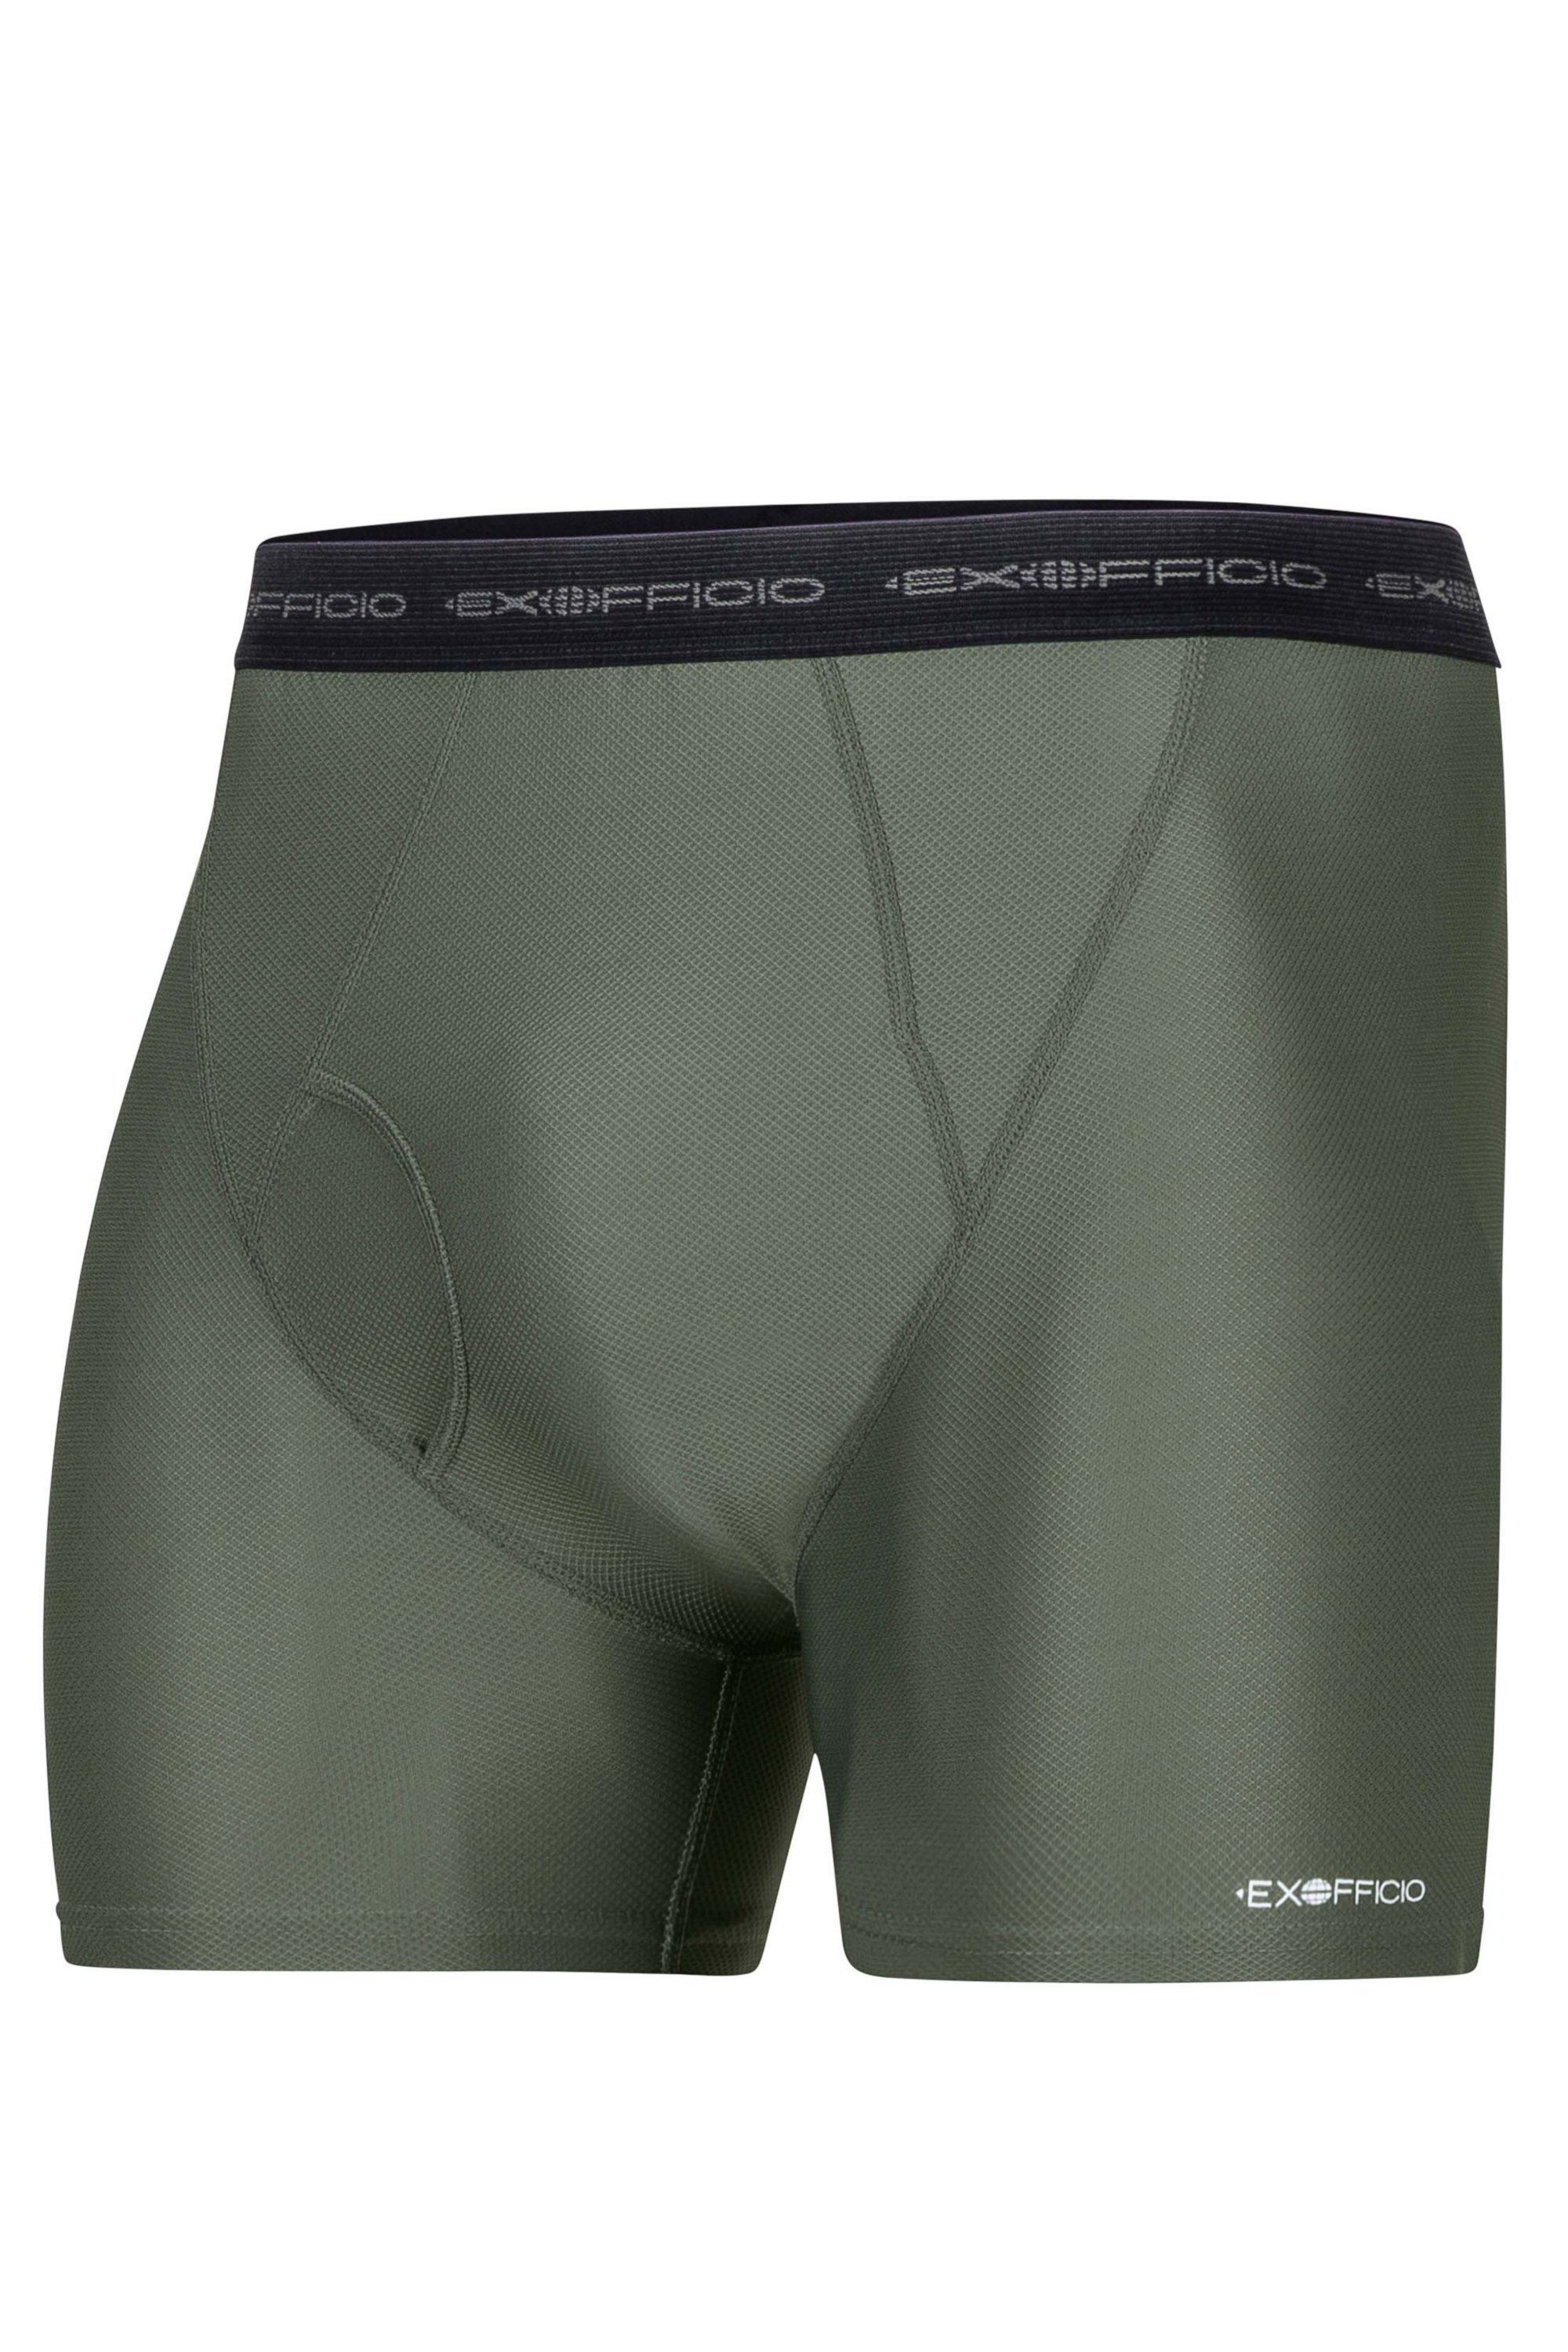 09ef5342c0 image of Give-N-Go Boxer Brief with sku 1241-1123